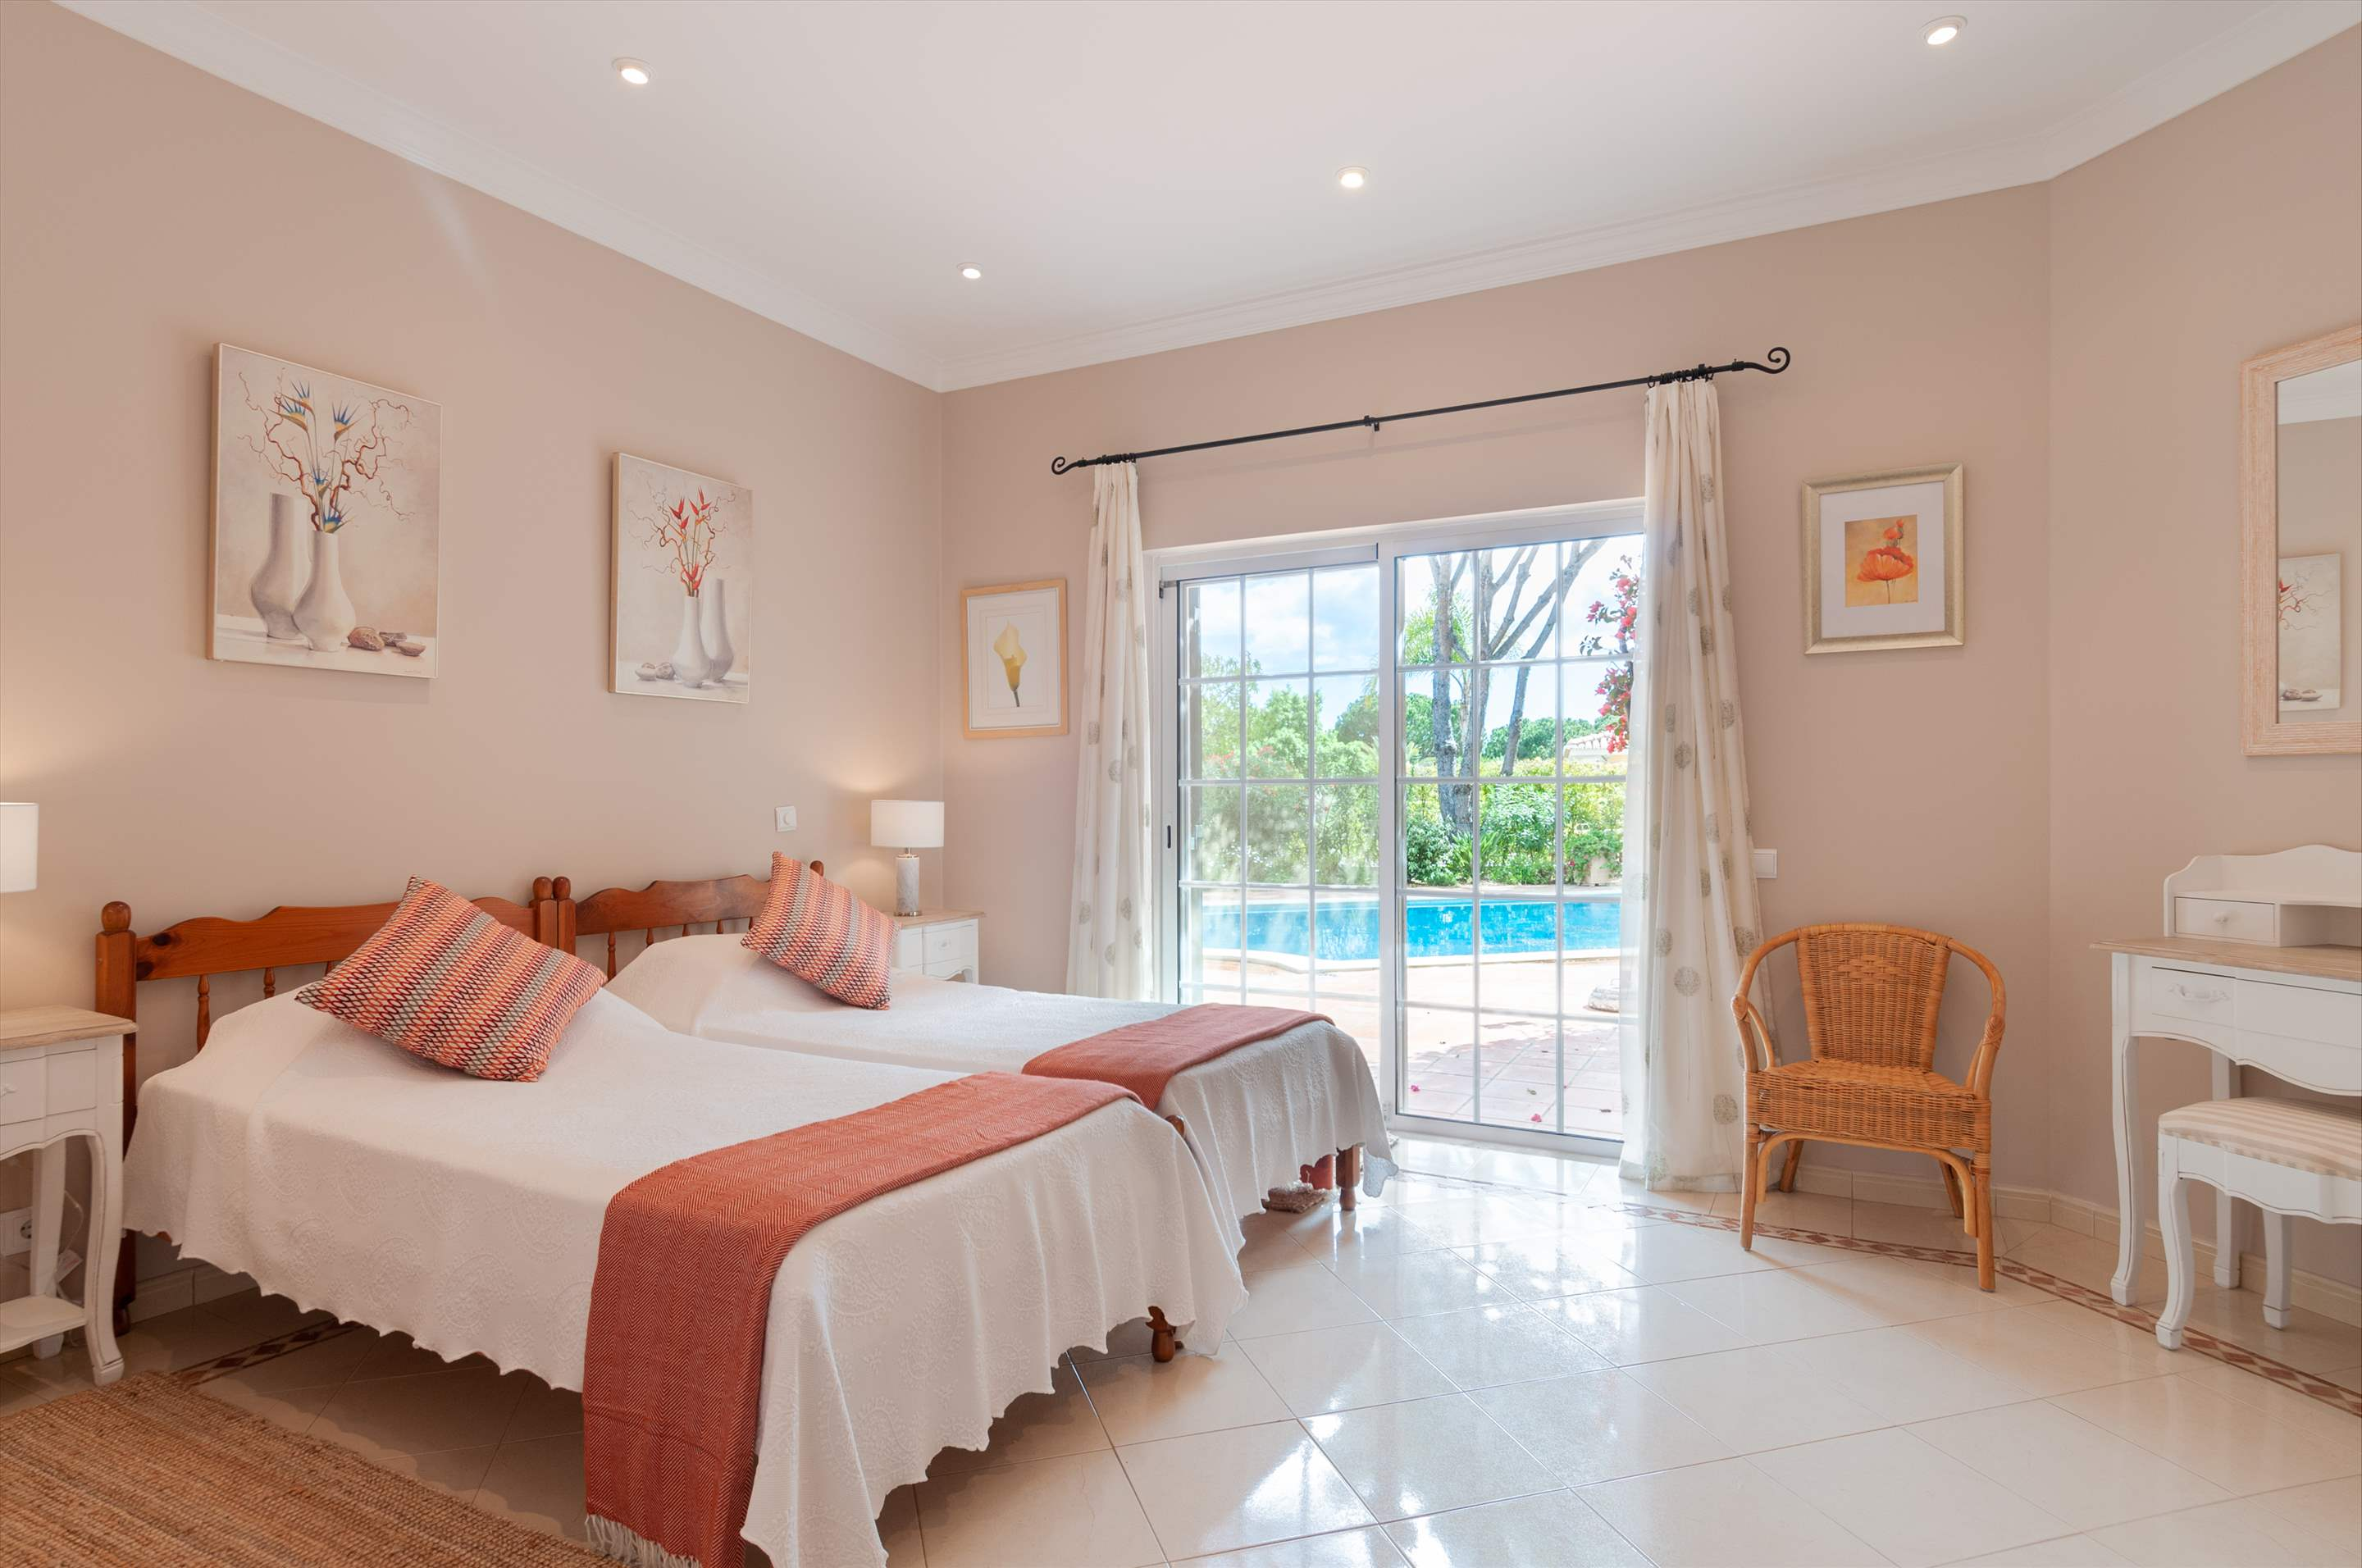 Casa dos Golfinhos, 4 bedroom villa in Vale do Lobo, Algarve Photo #19